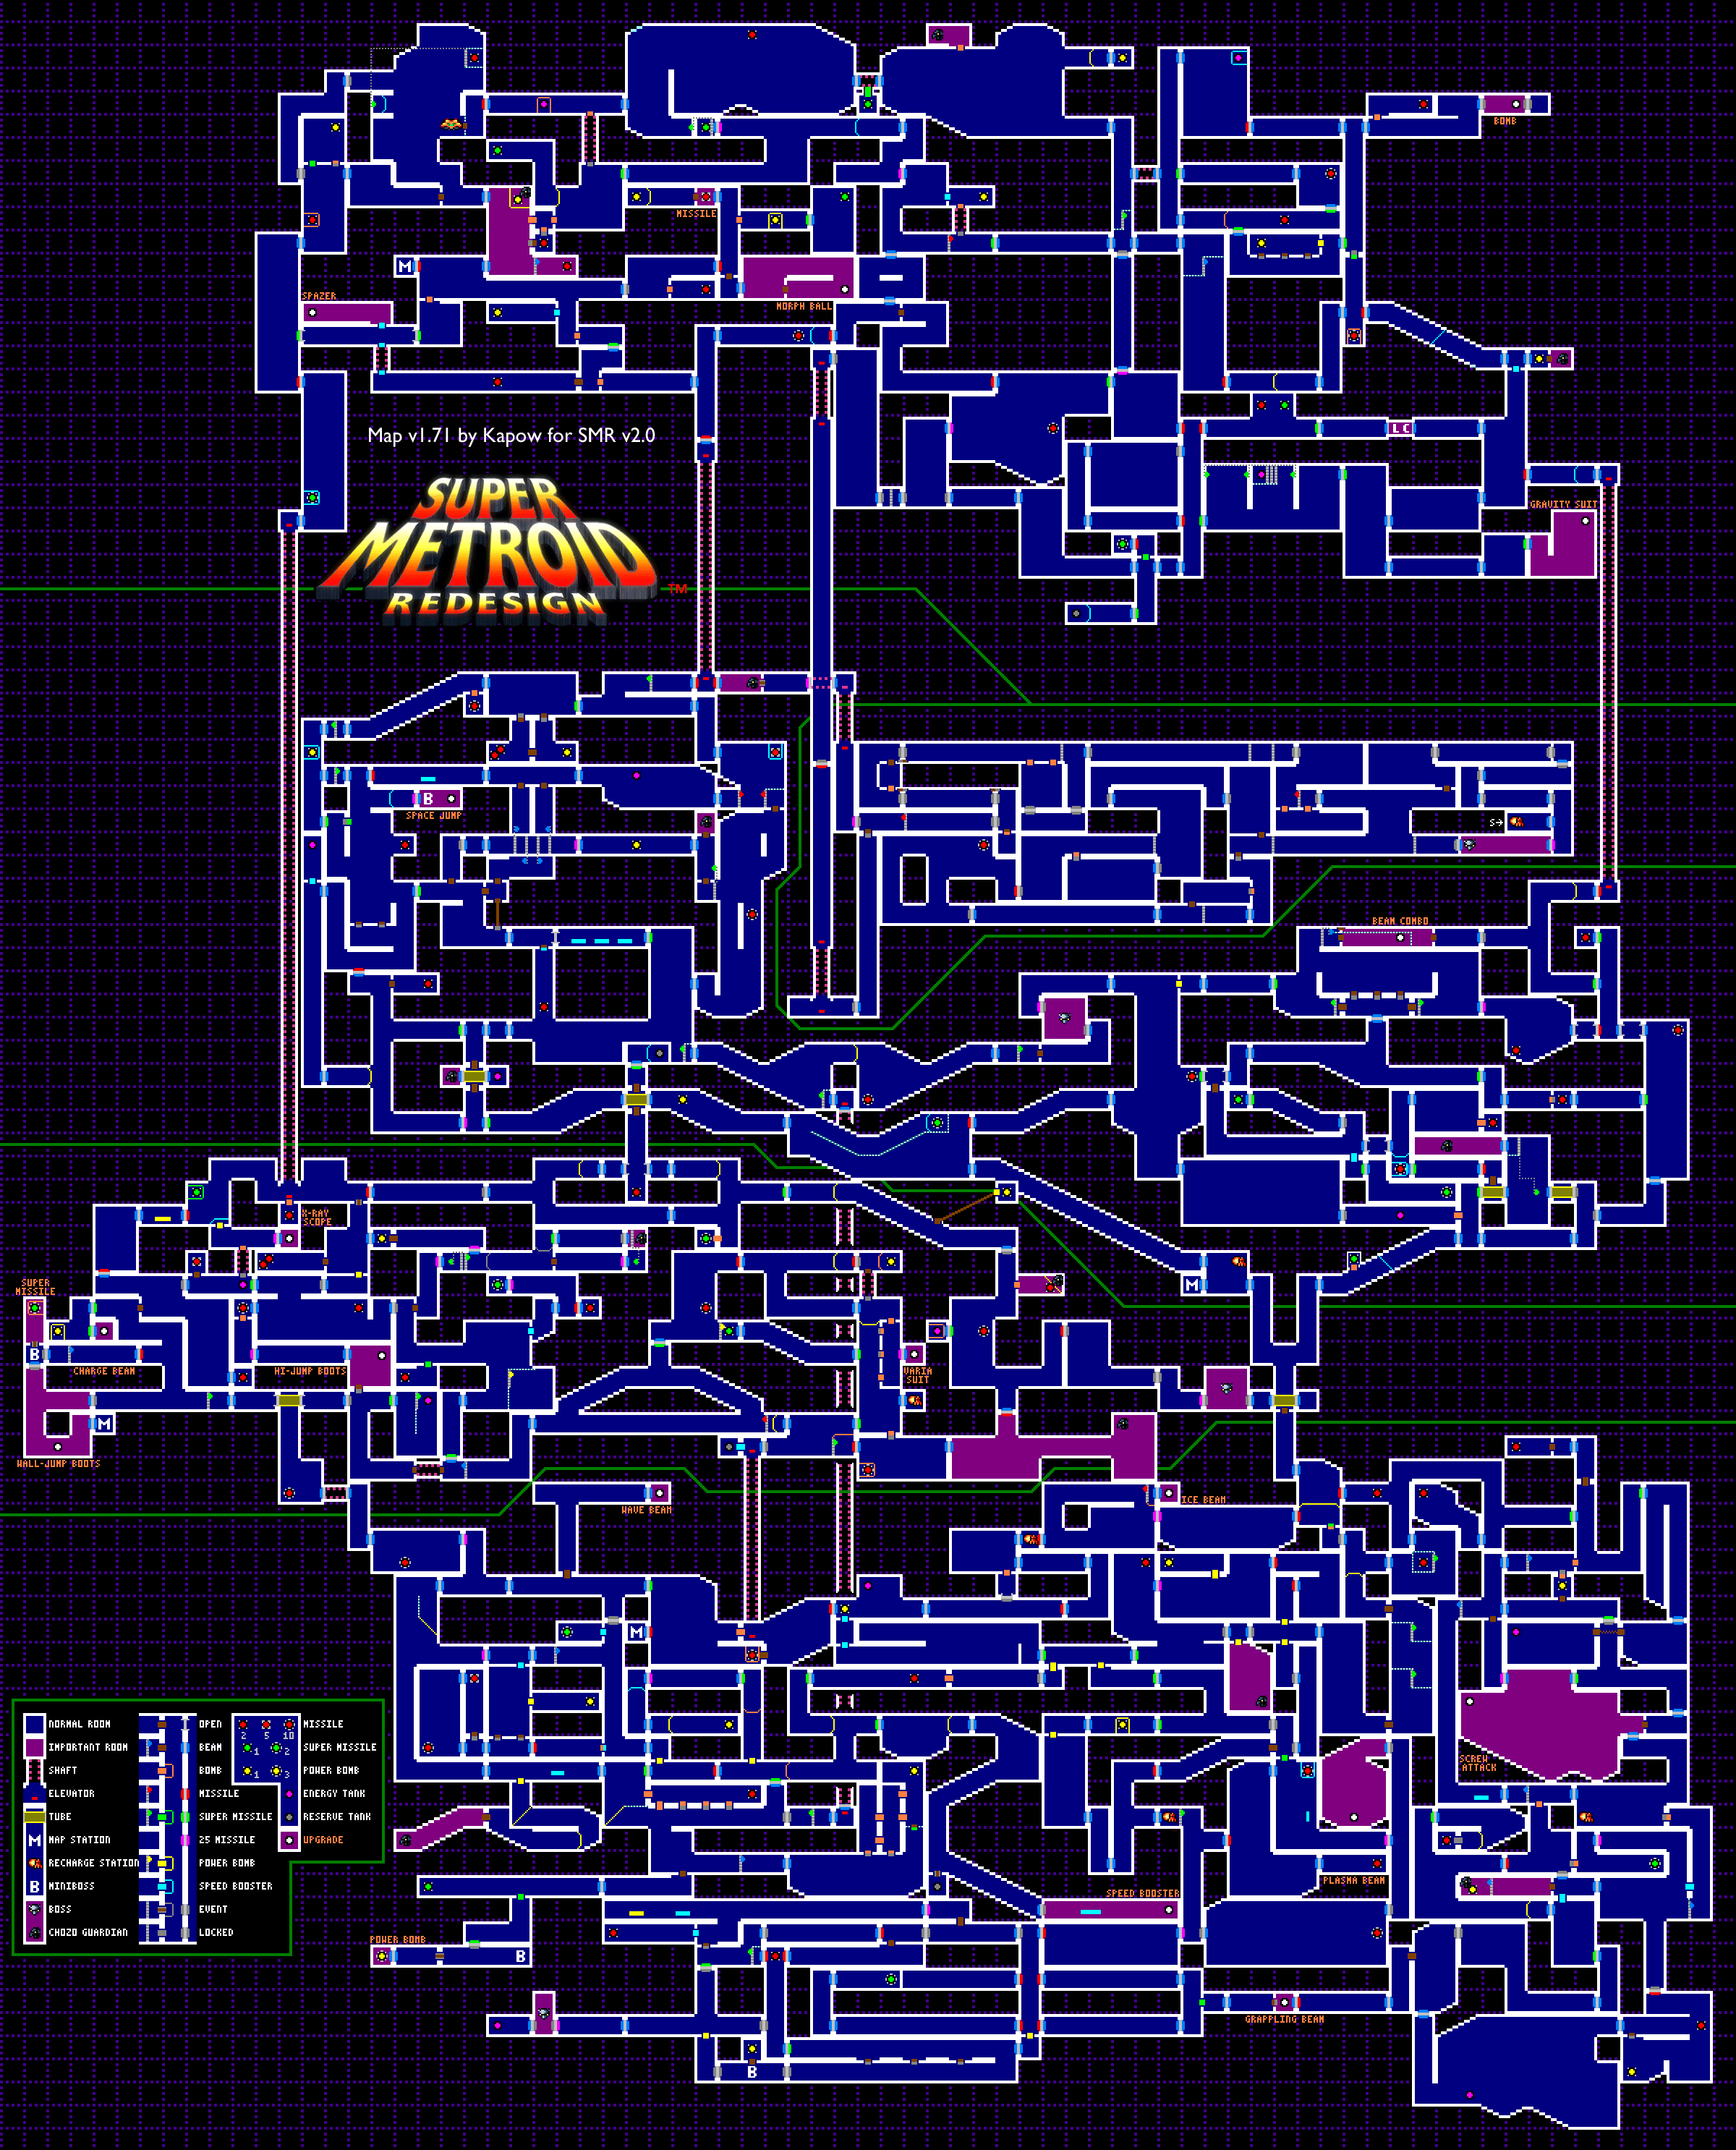 Metroid Fusion Map : metroid, fusion, Super, Metroid, Map-I, Spent, Hours, Scouring, These, Hidden, Items., X-ray, Vision, Anything, Metroid,, Snes,